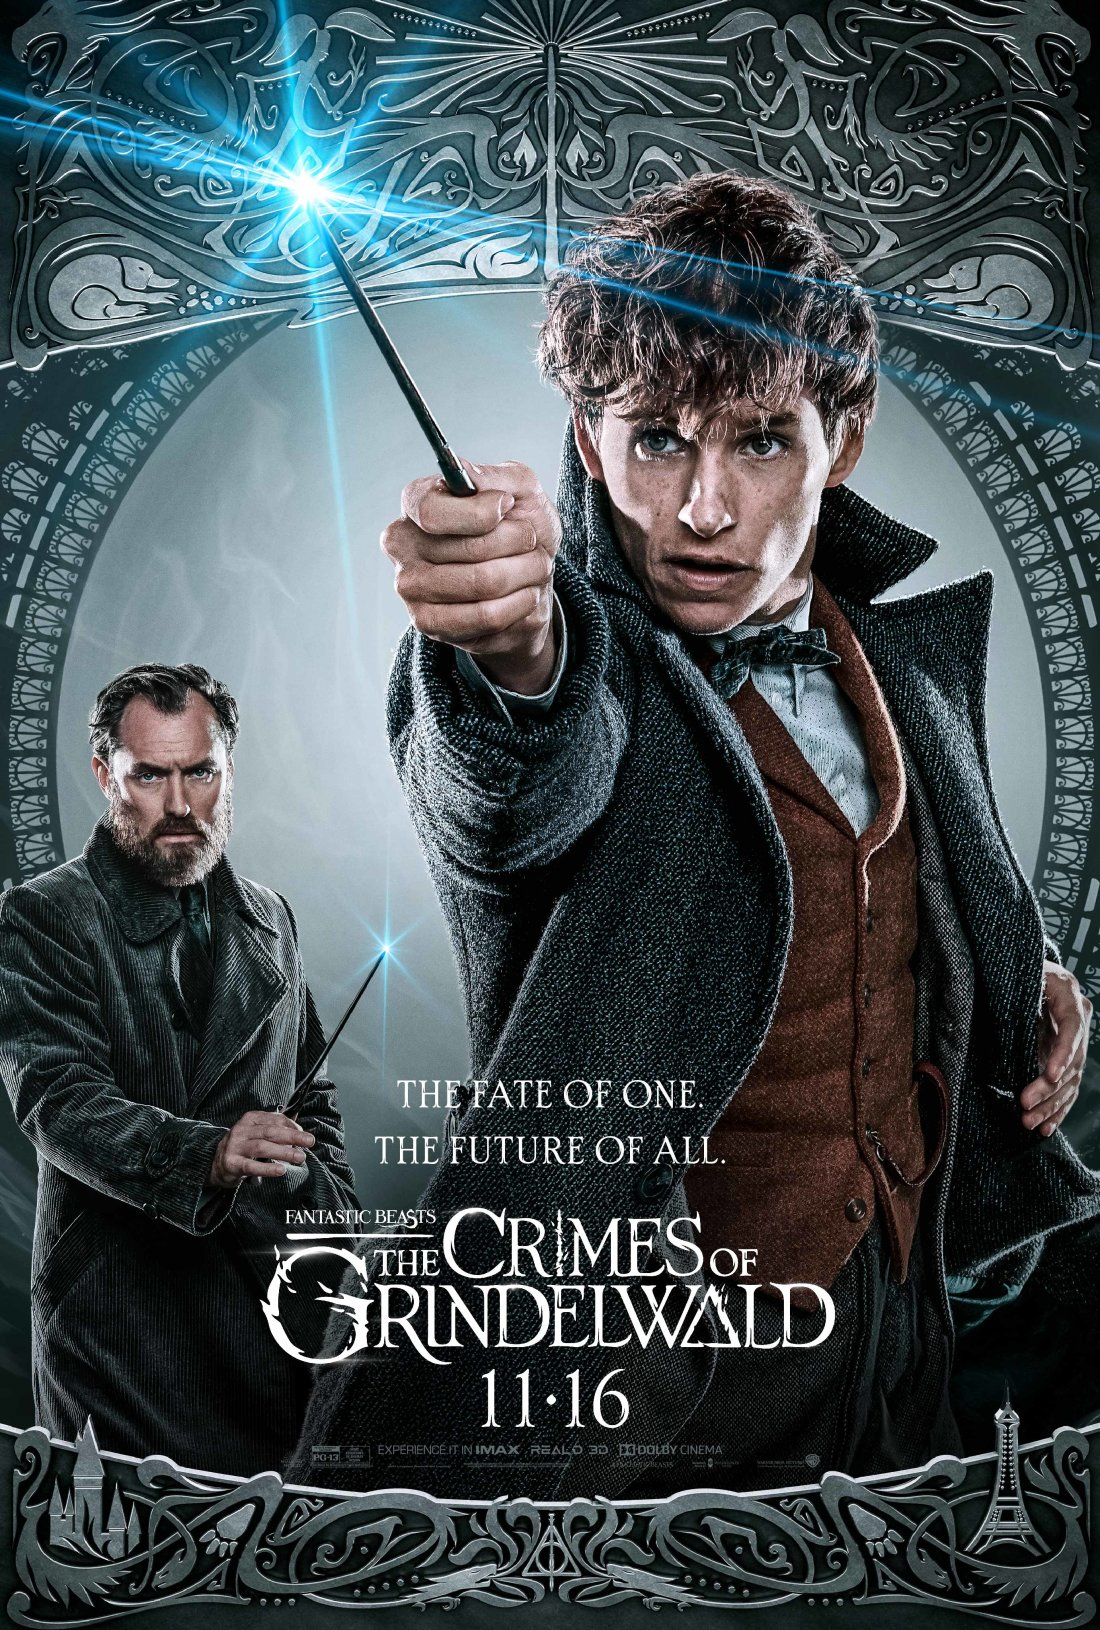 Fantastic Beasts The Crimes Of Grindelwald 2018 Poster